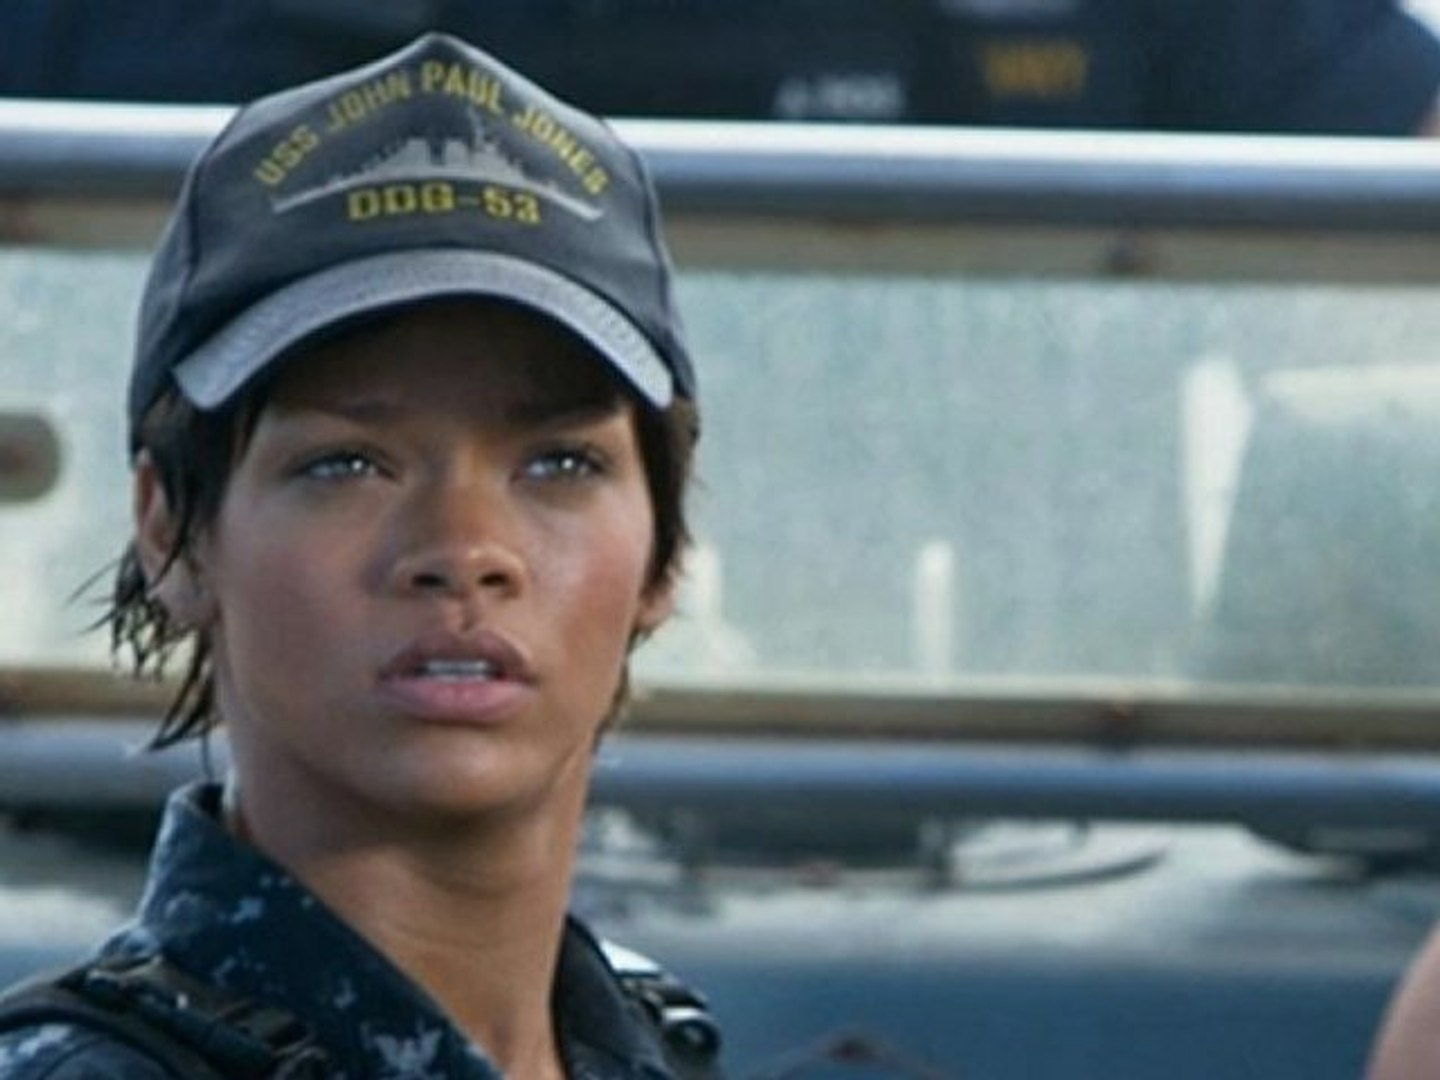 Battleship HD Full Movie 2012 (1080p) Complete Length Online Free Streaming Part 1 of 9